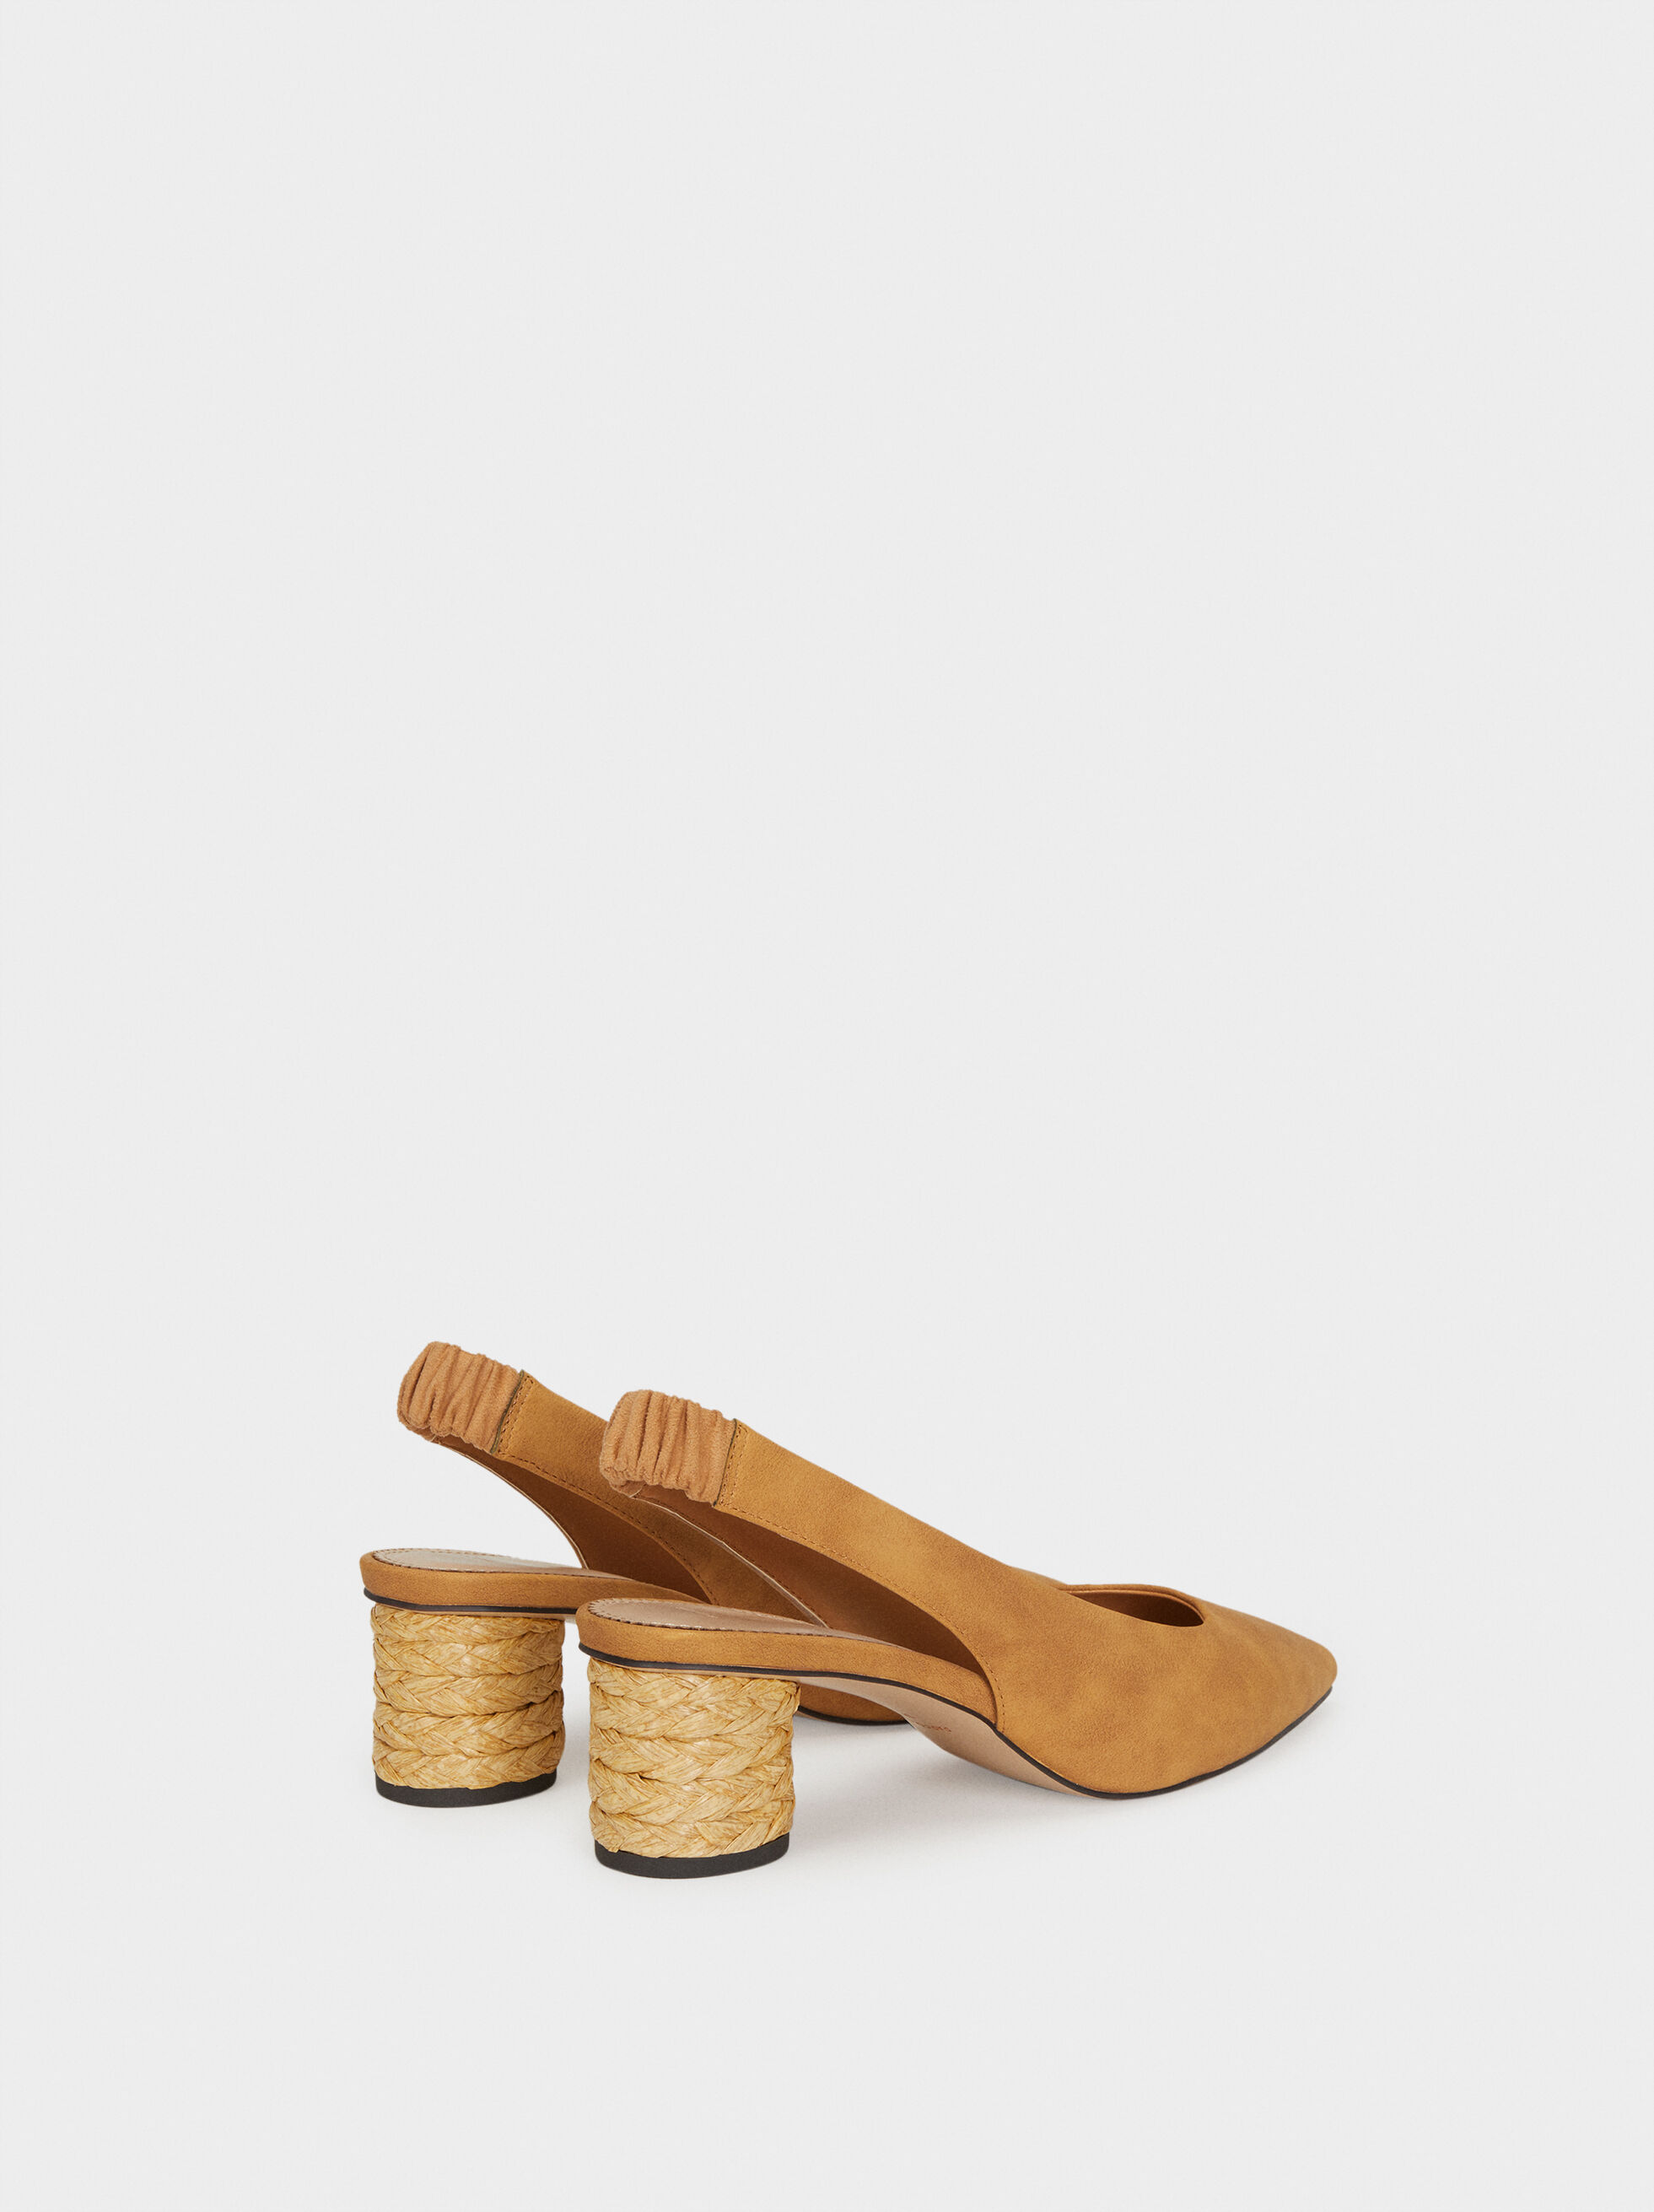 Slingback Shoes With Raffia Heels, Beige, hi-res